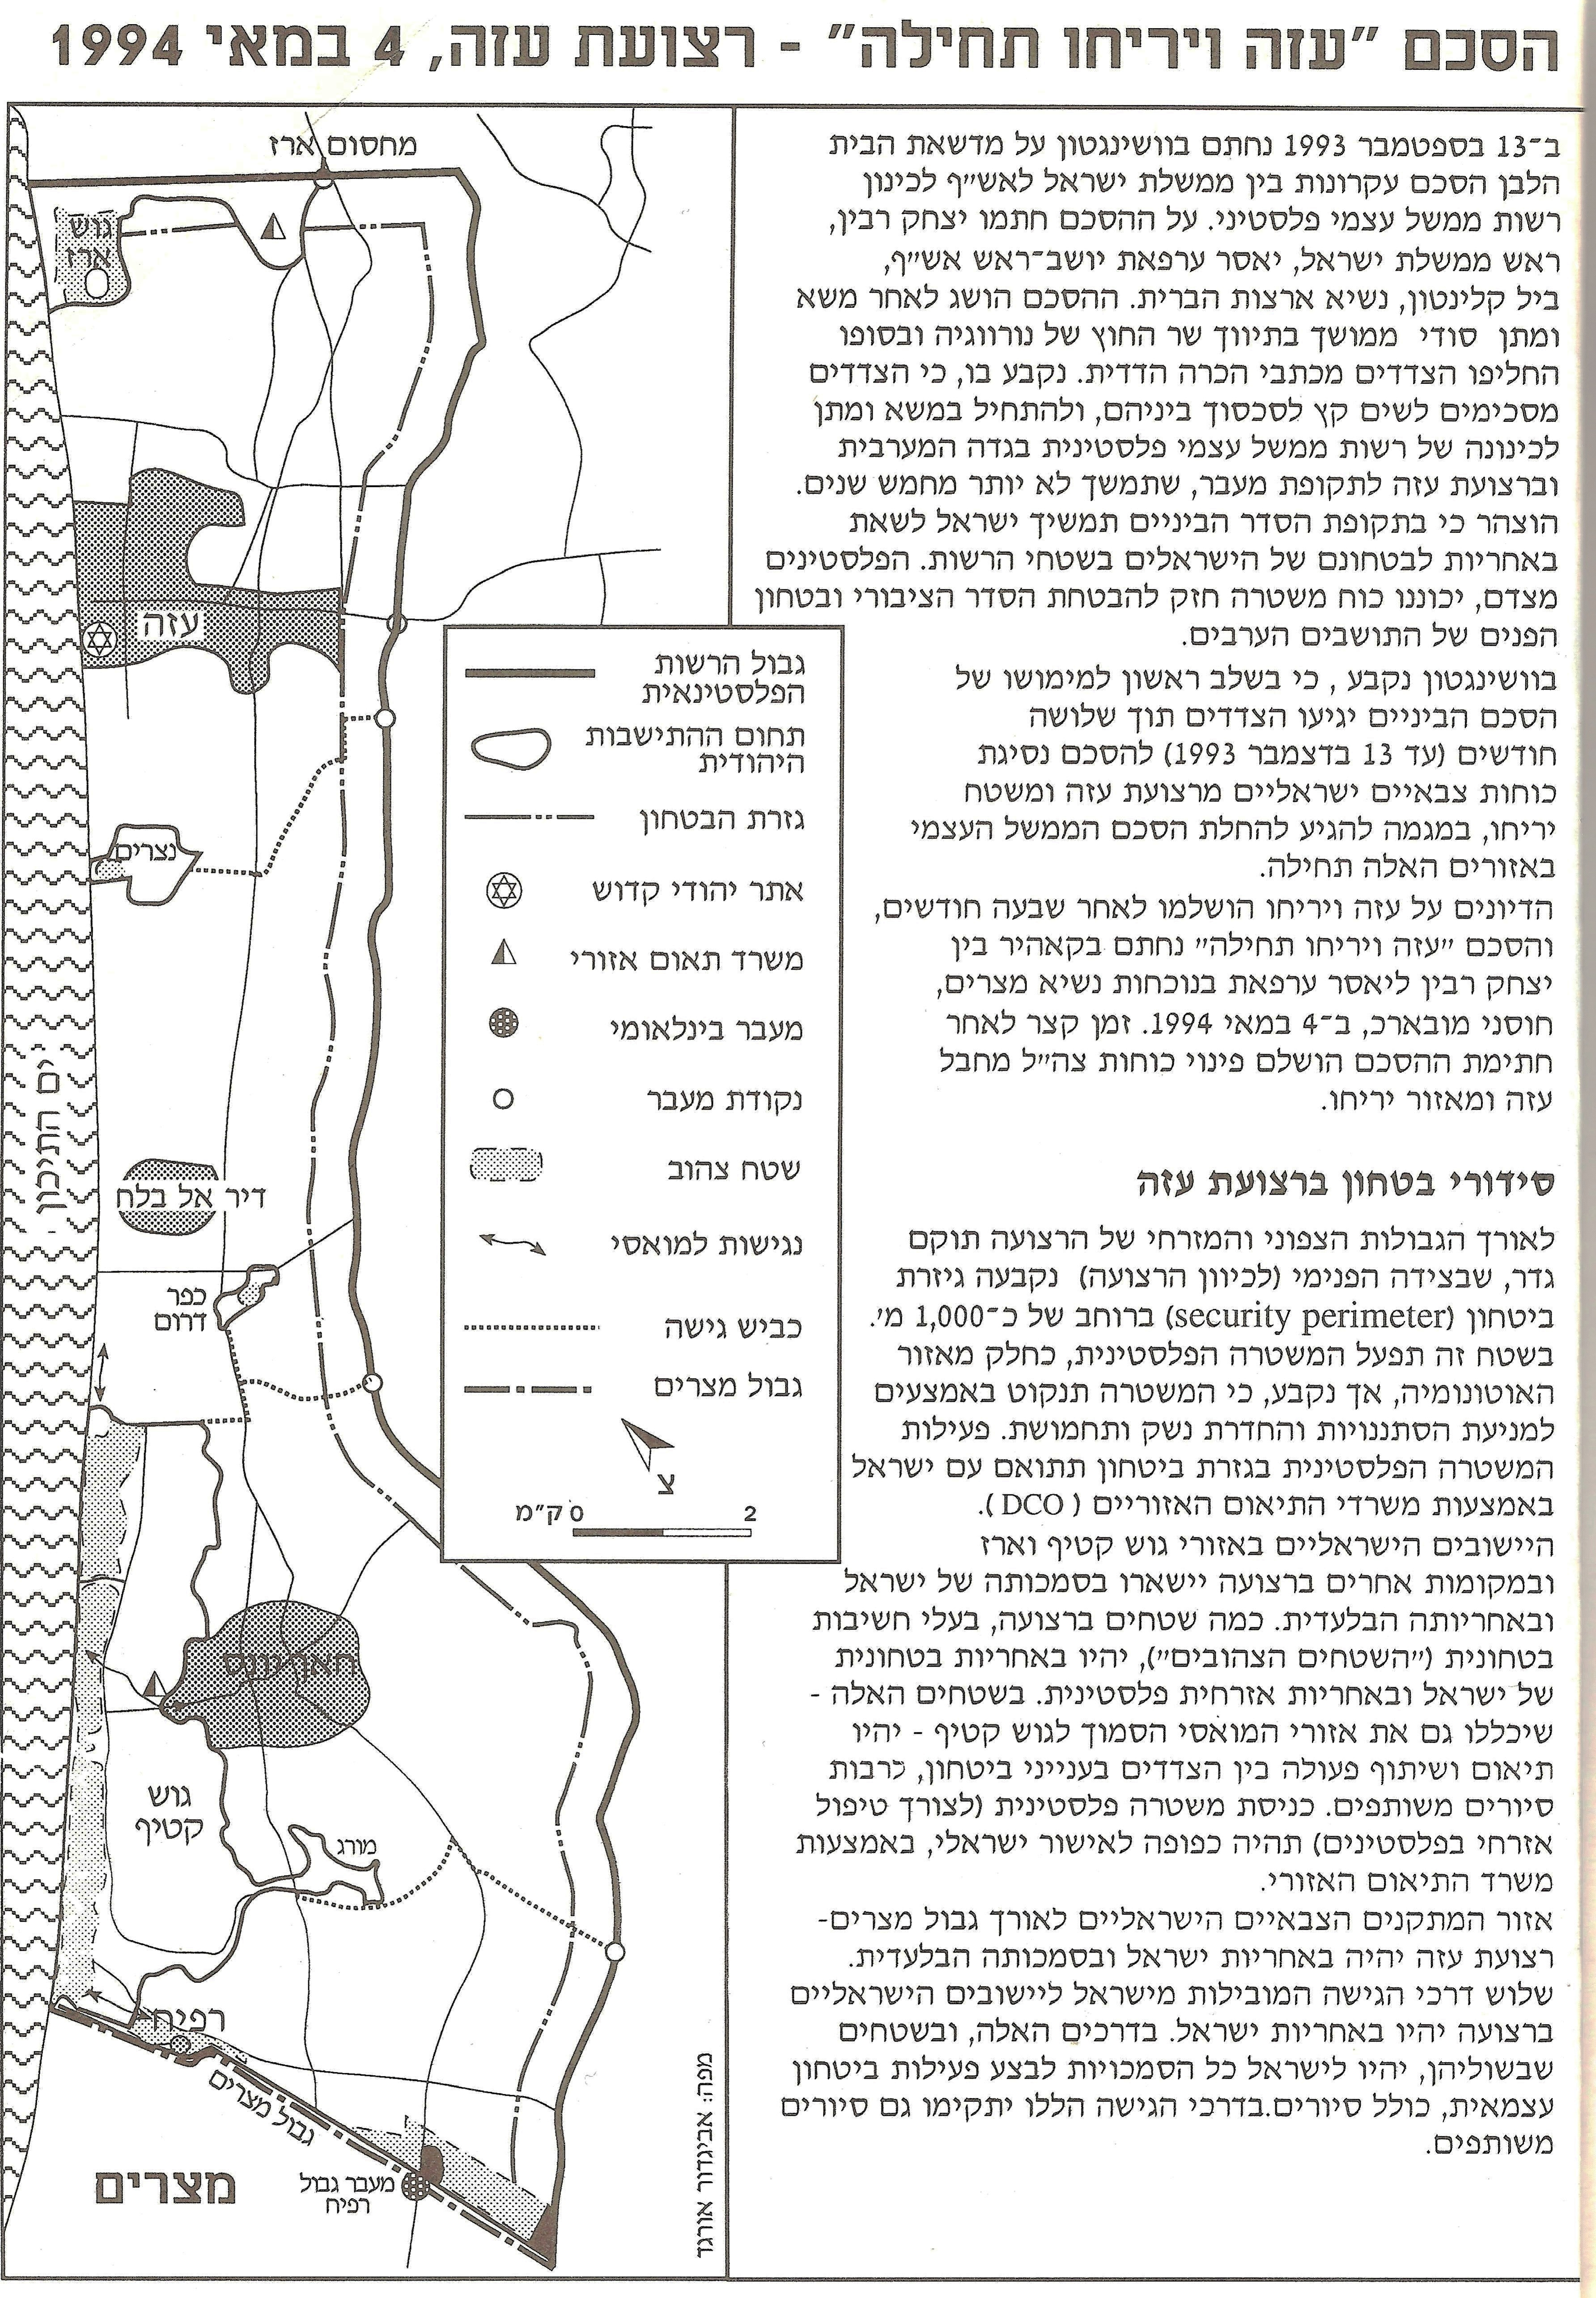 Cairo Agreement on Gaza and Jericho - Map 2 - Hebrew (1994)